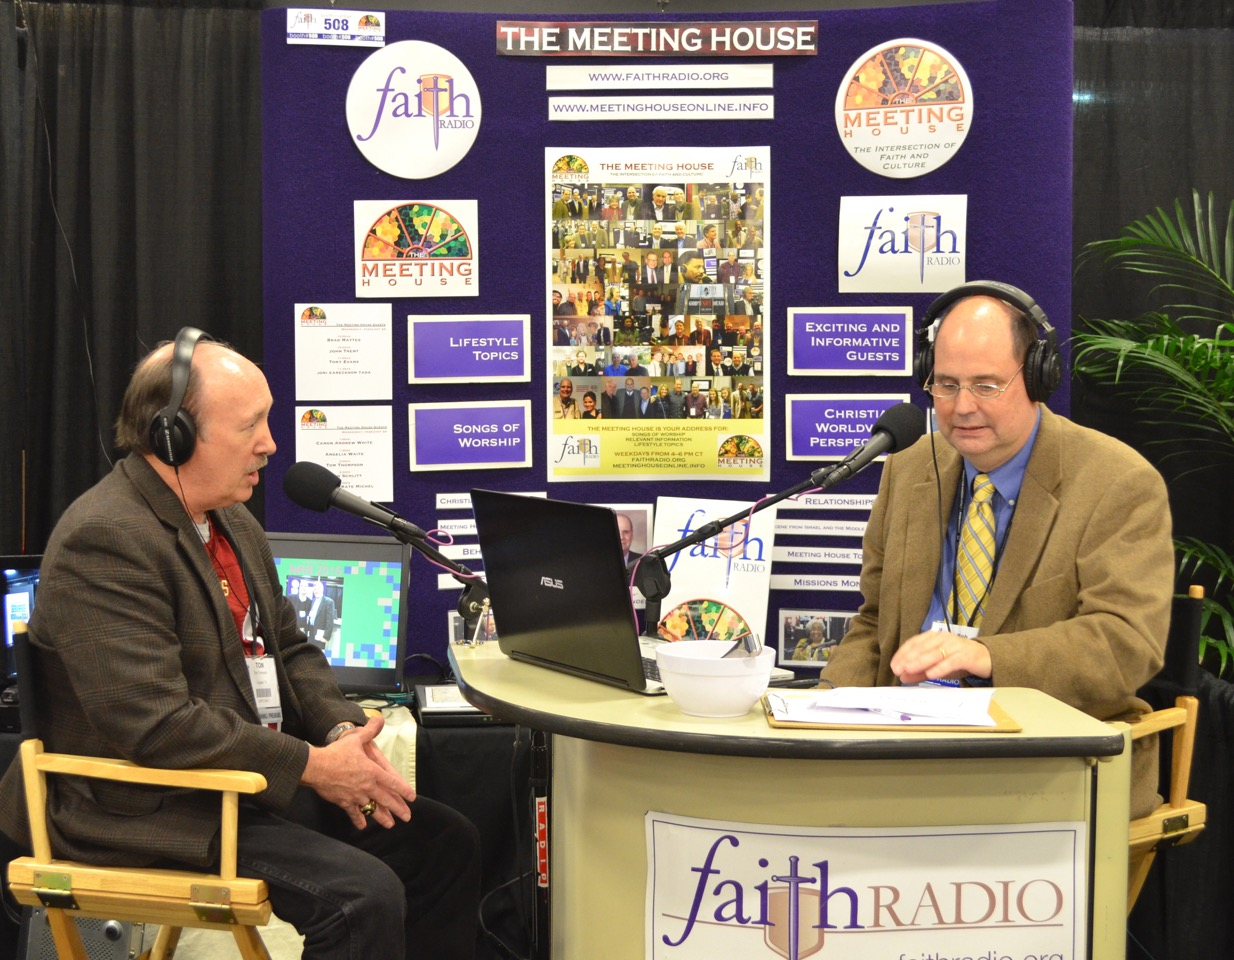 Tom w/ Bob Crittenden from The Meeting House (Faith Broadcasting)